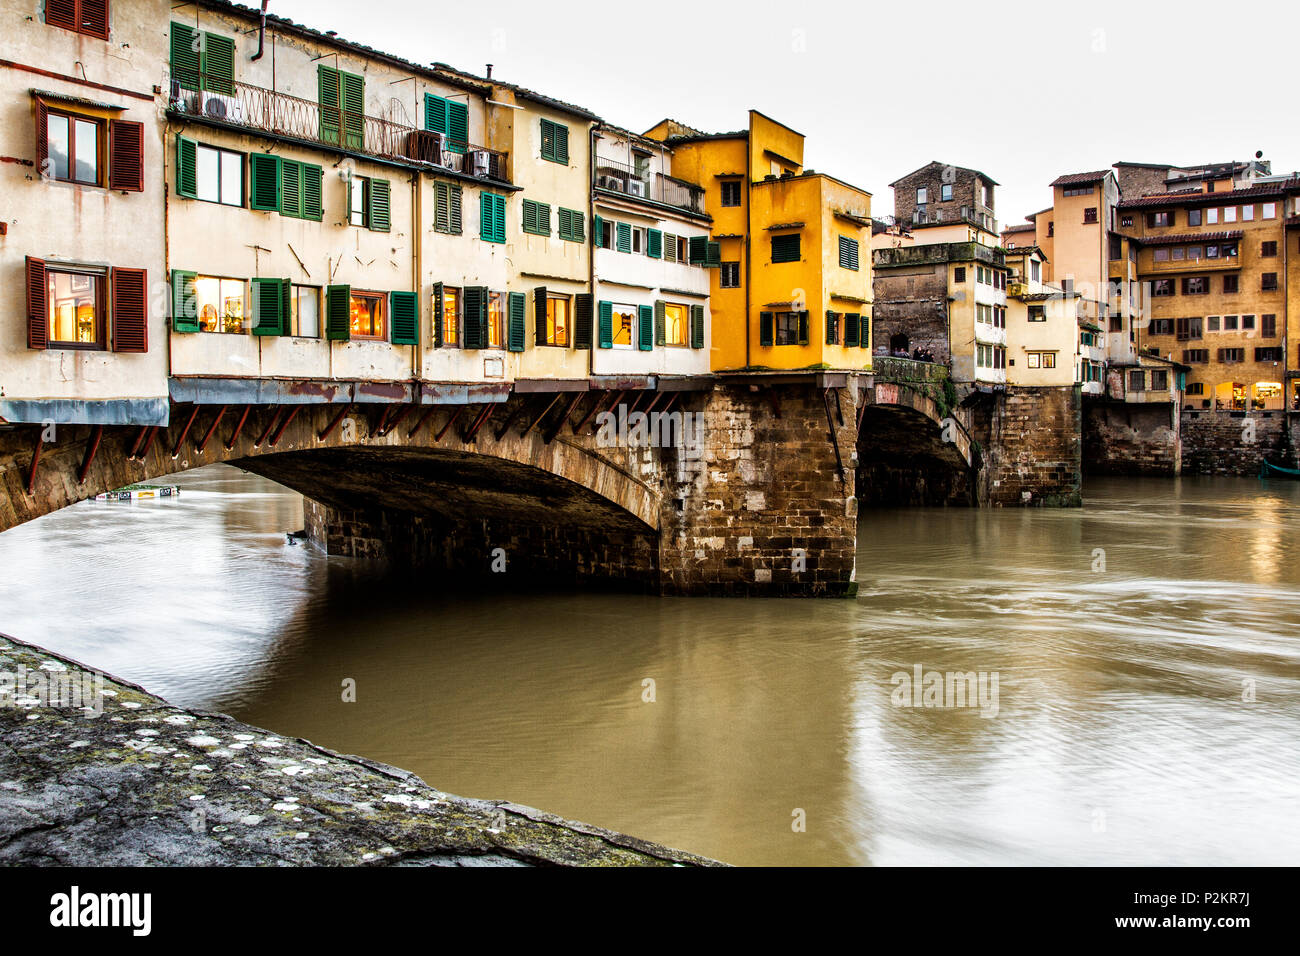 Ponte Vecchio (Old Bridge). Florence, Province of Florence, Italy. - Stock Image